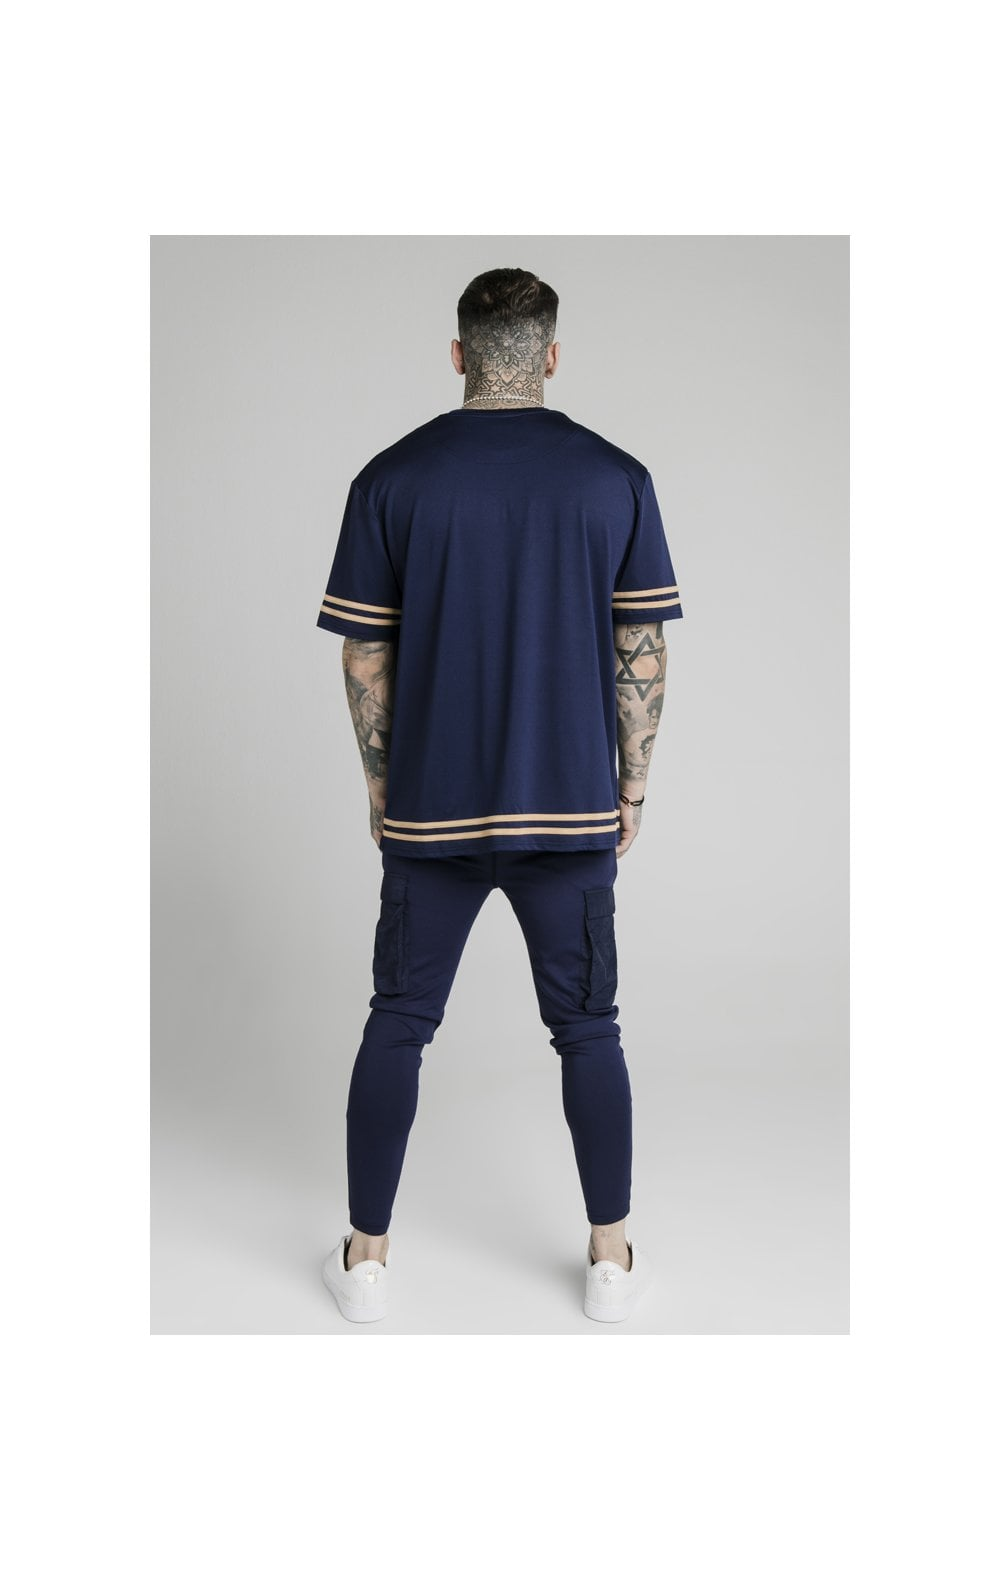 SikSilk S/S Essential Tee - Navy Eclipse (4)